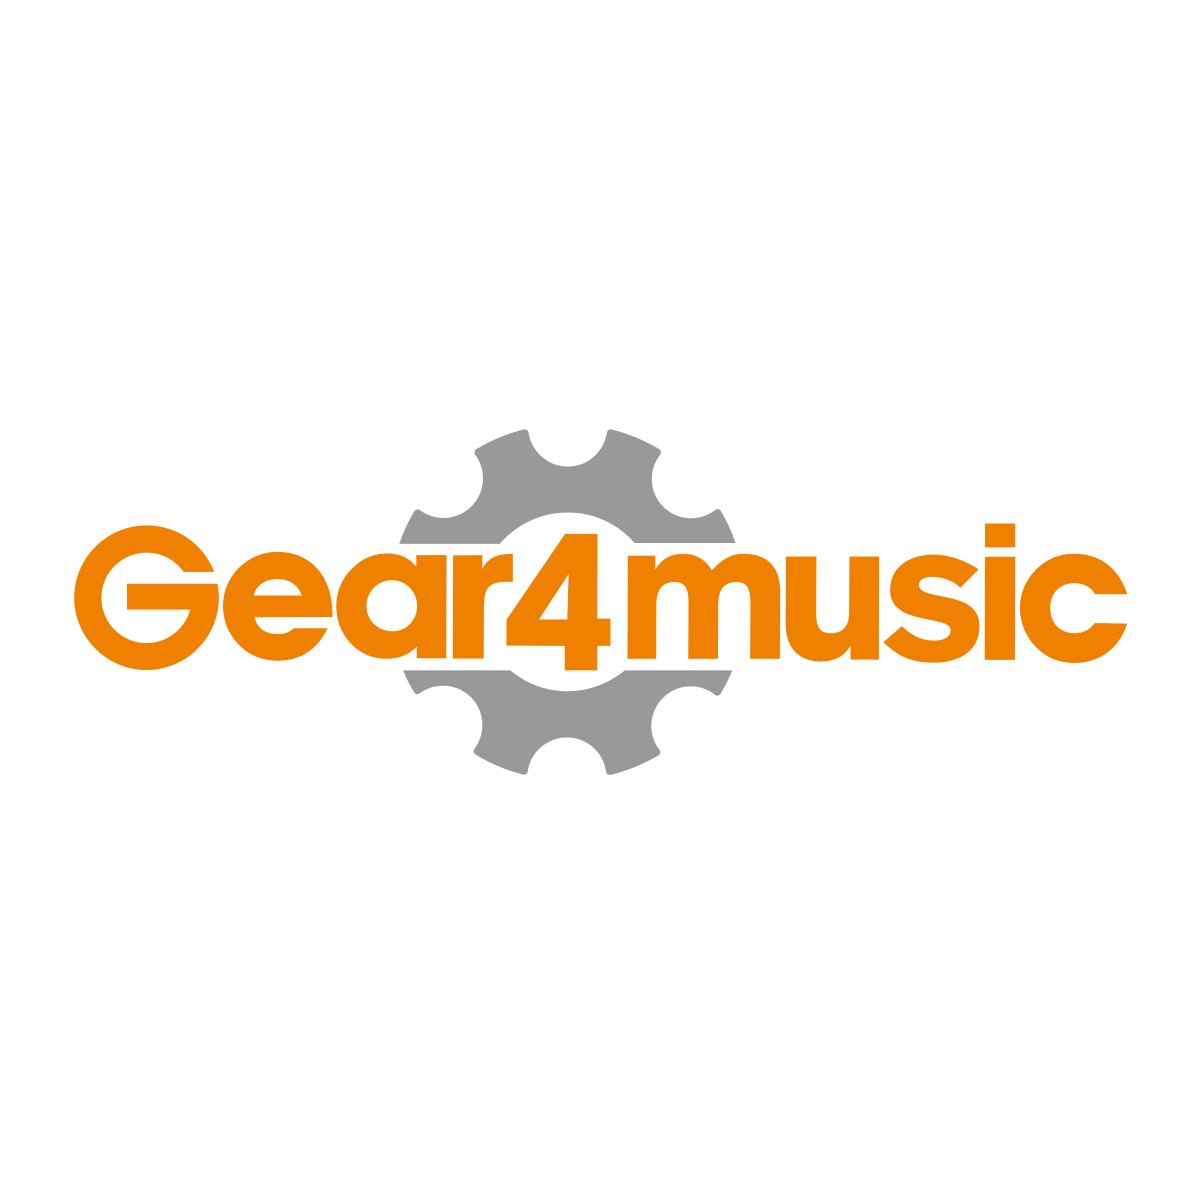 Atril luz de Gear4music, 2 LED